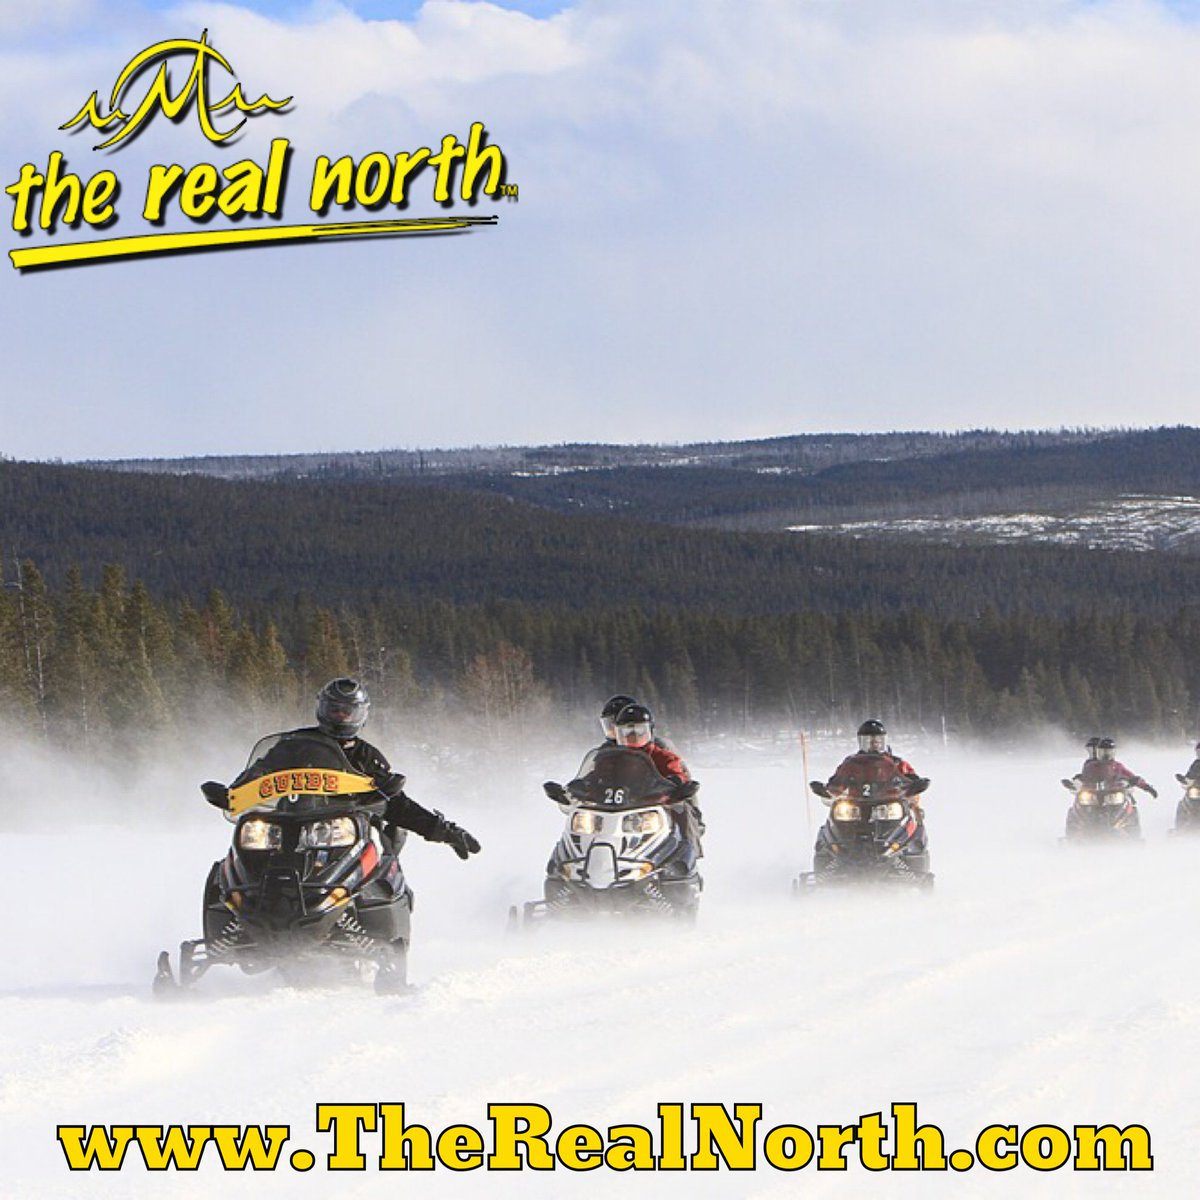 If you like snowmobiling, now is the time to book your Marinette County adventure.#snowmobiling #Marinette <br>http://pic.twitter.com/VMqZFfXSOU